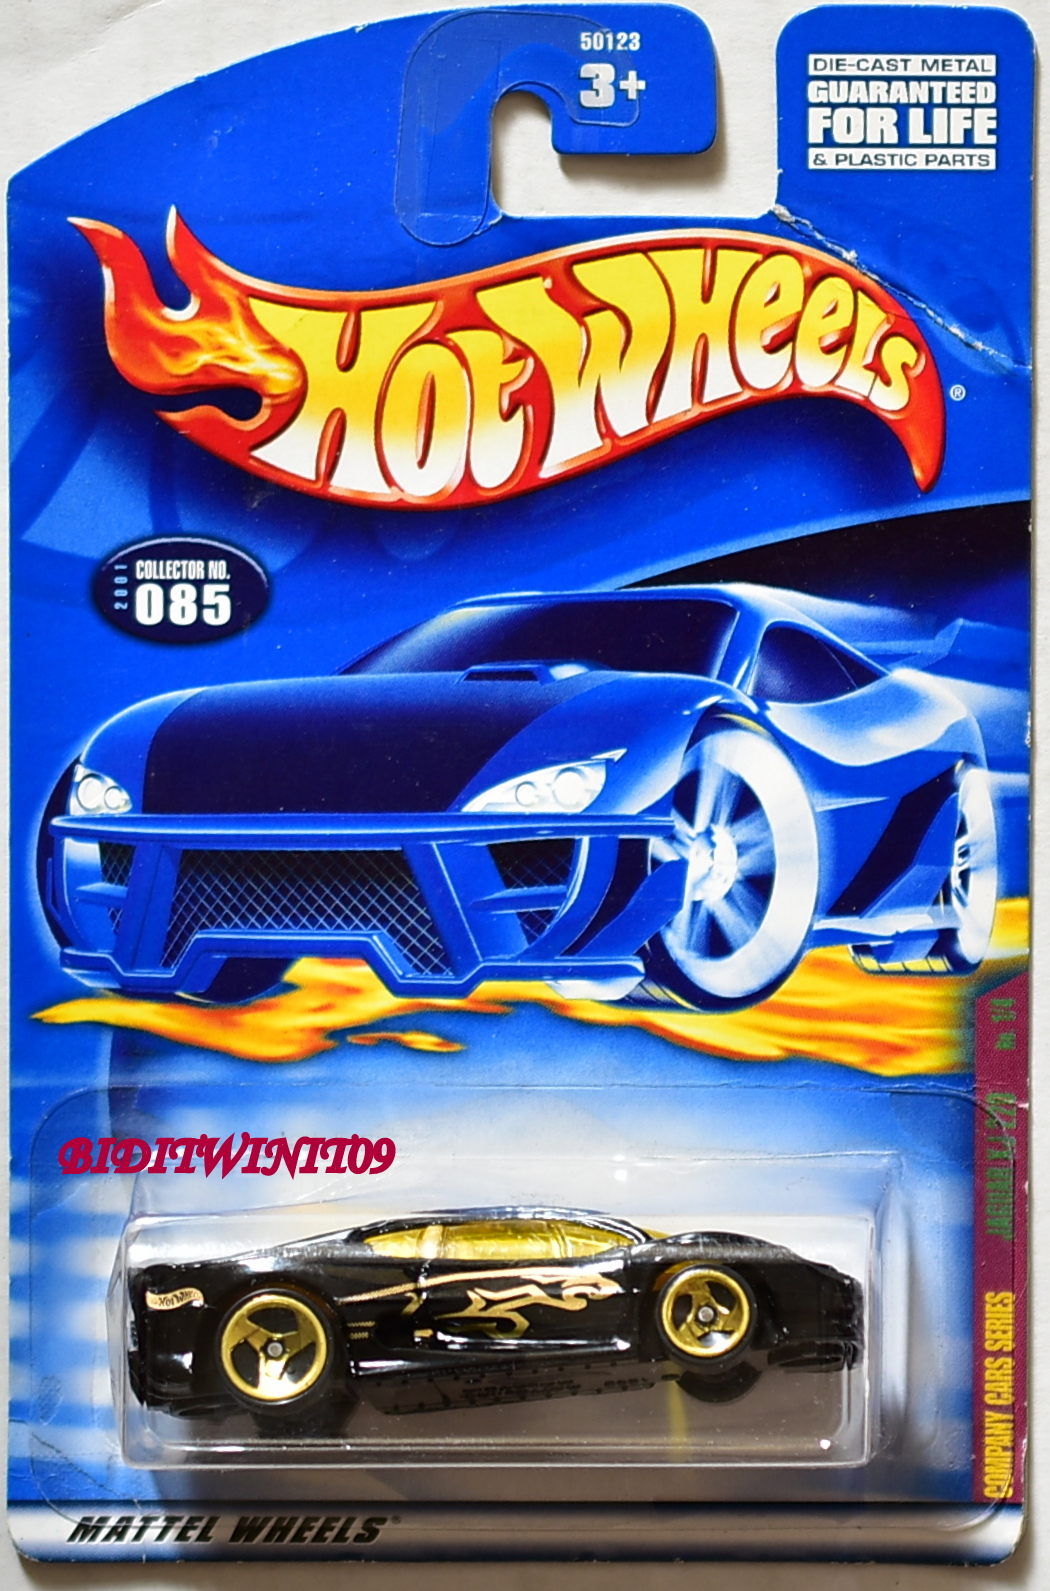 HOT WHEELS 2001 JAGUAR XJ220 BLACK #085 MIB BENT CARD